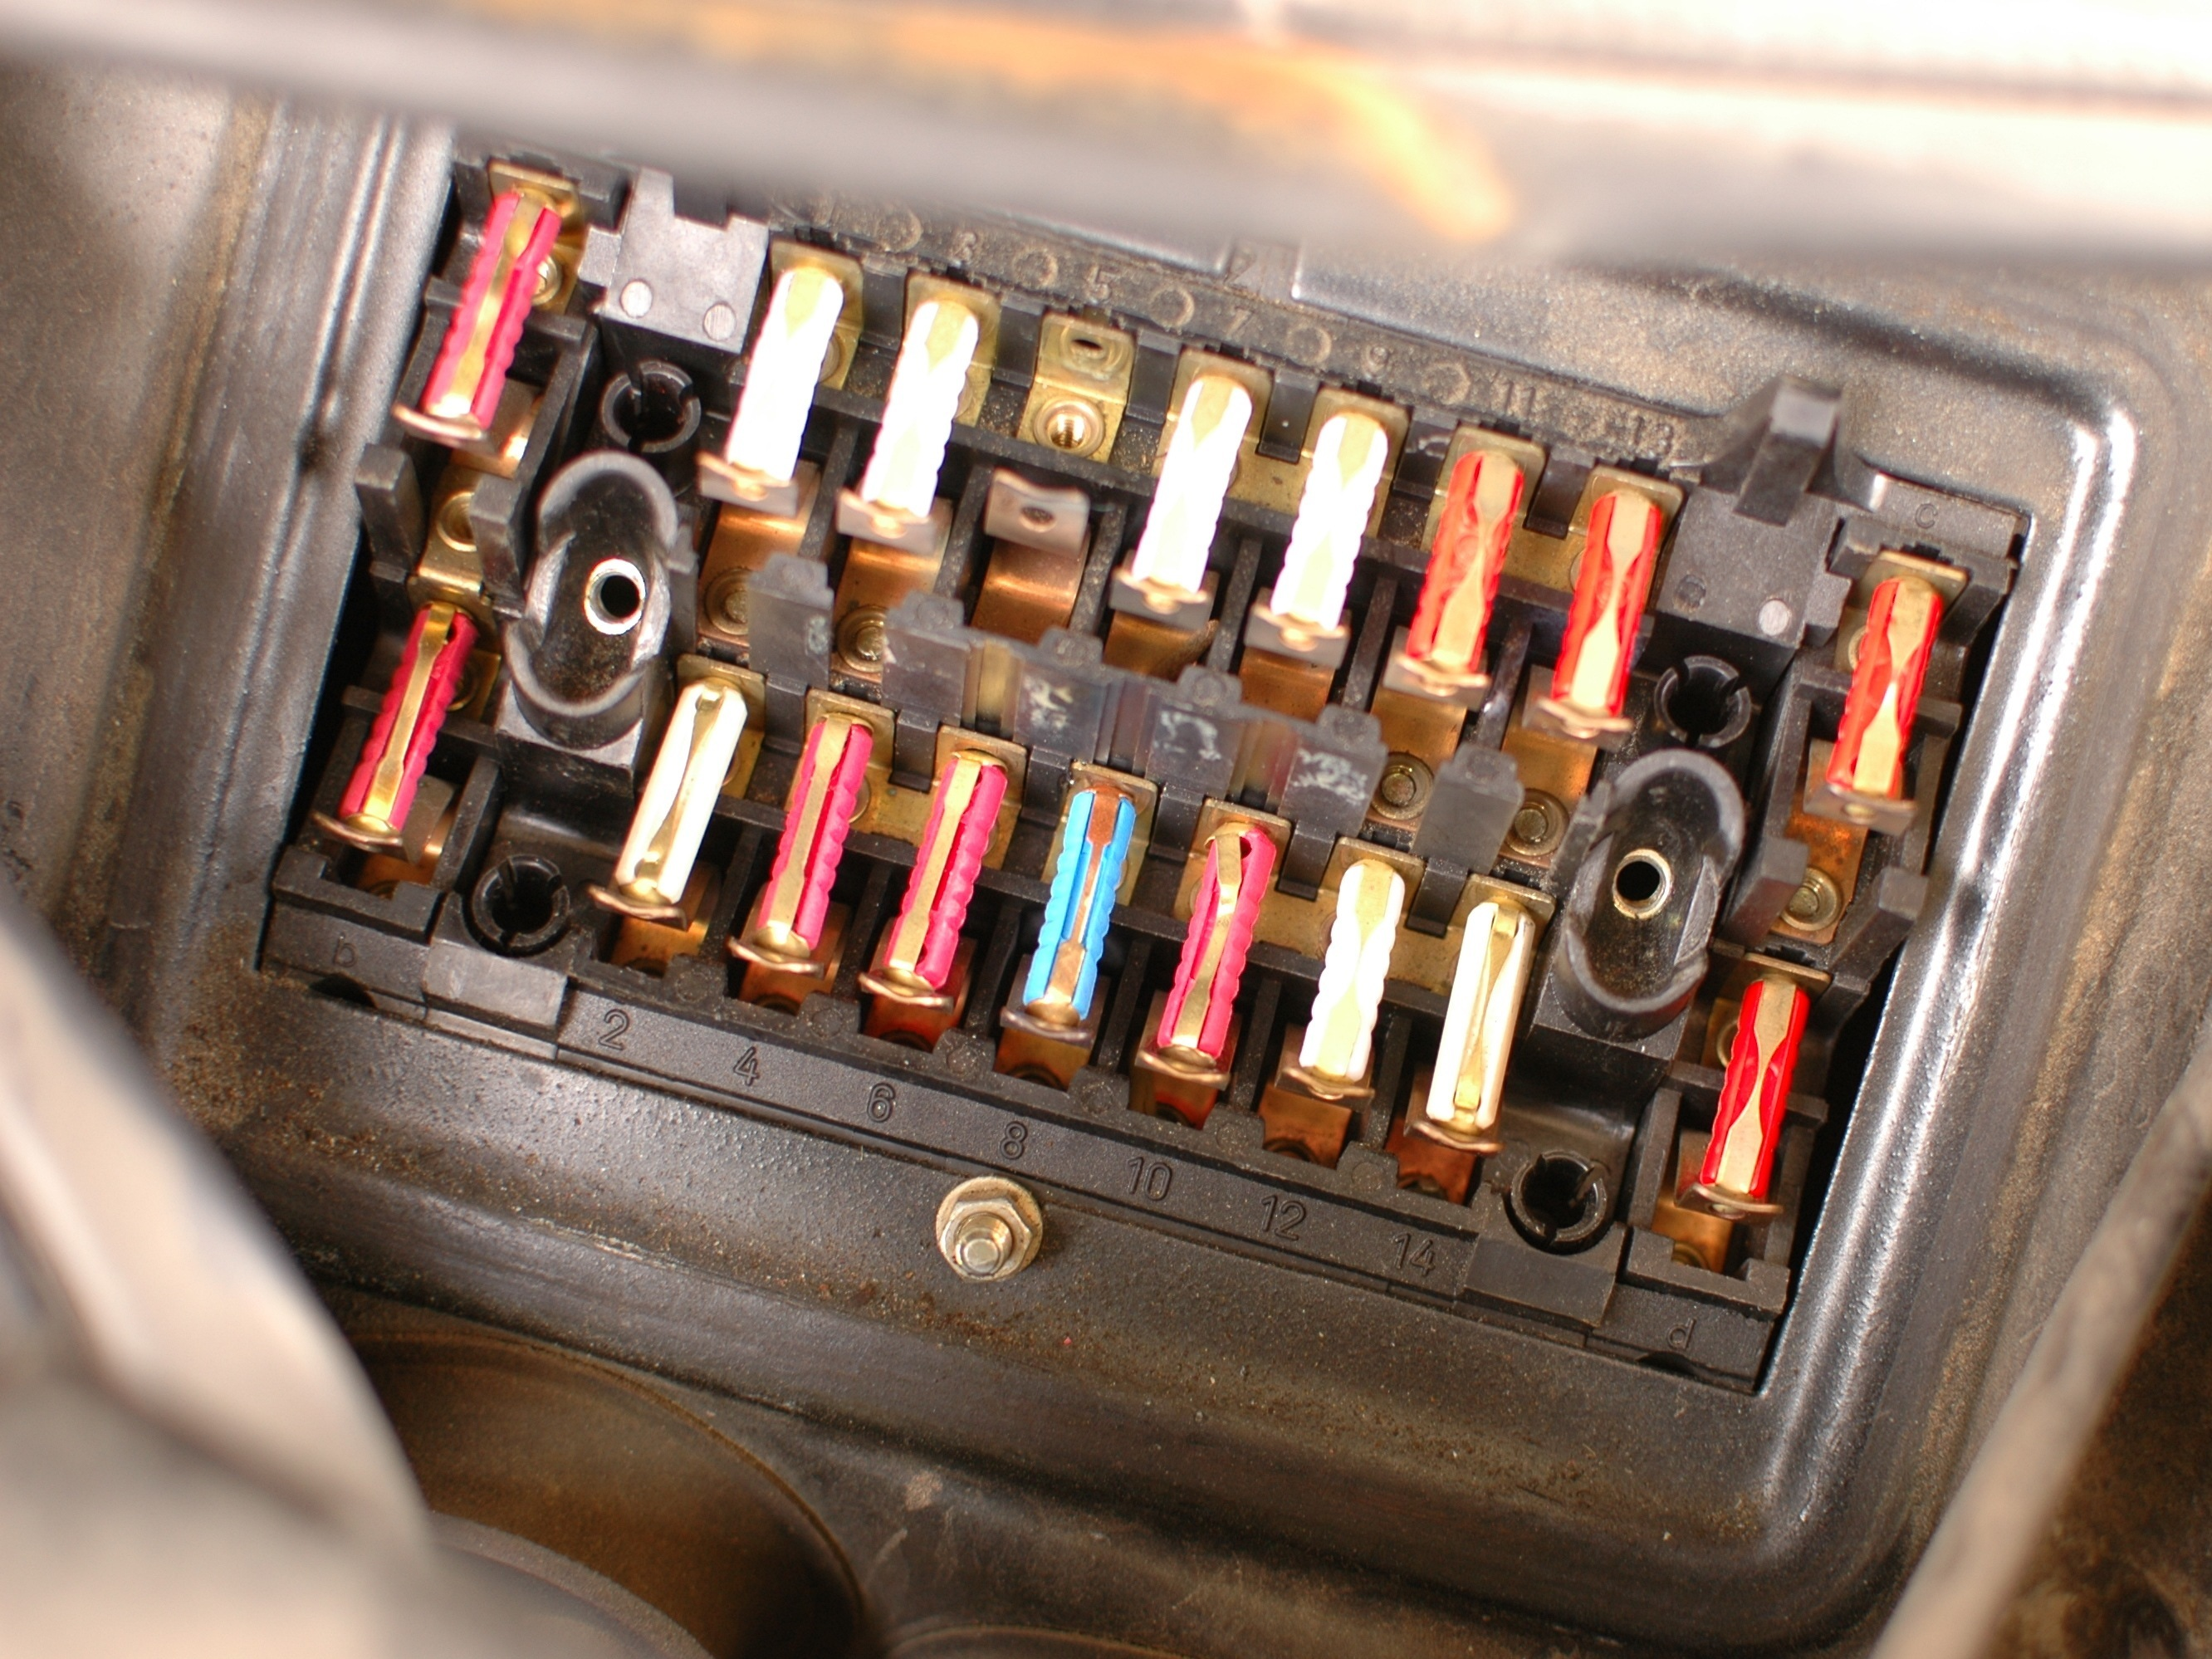 AfYAfmoCaMTVU2ap how to check mercedes w123 fuses ifixit 1978 Mercedes 450SEL at gsmx.co